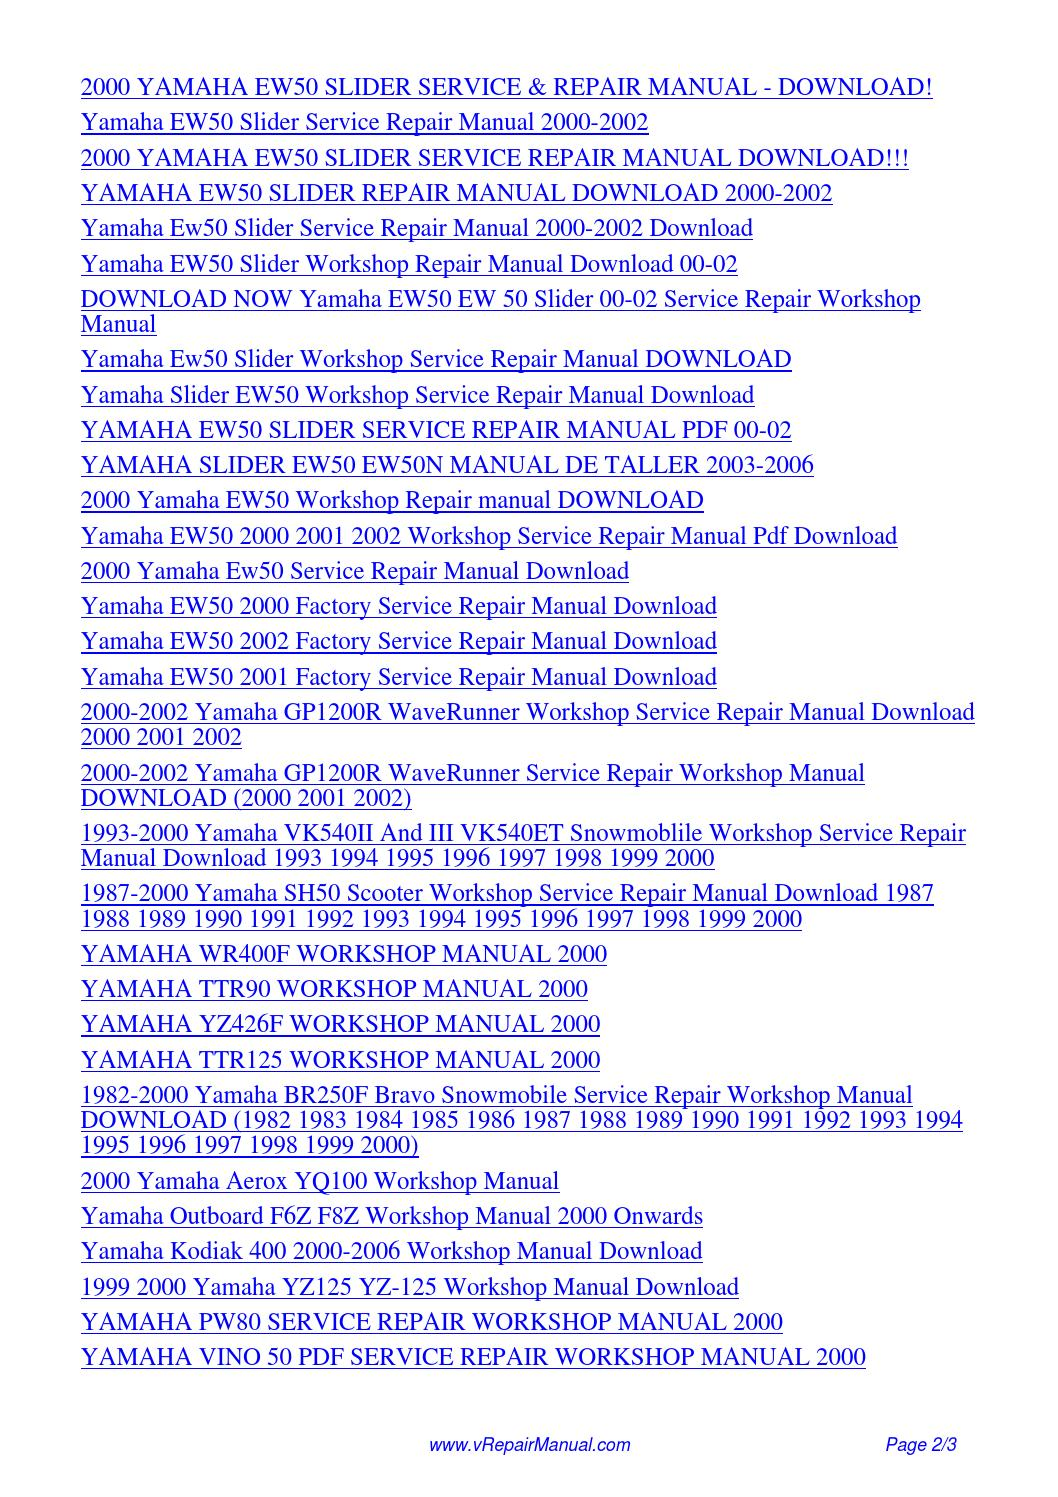 YAMAHA EW50 SLIDER SERVICE REPAIR WORKSHOP MANUAL 2000.pdf by David Zhang -  issuu